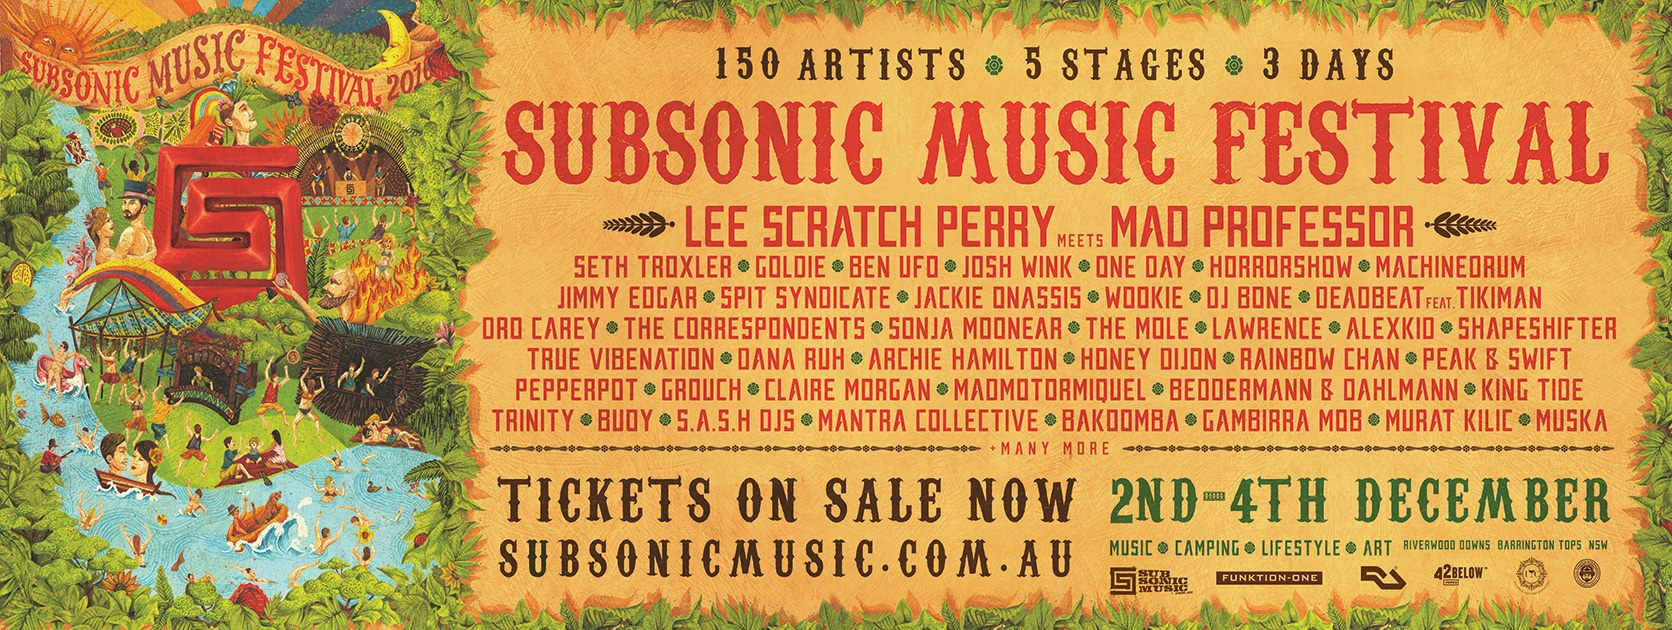 Tickets for Subsonic Music Festival 2016 in Monkerai from Ticketbooth